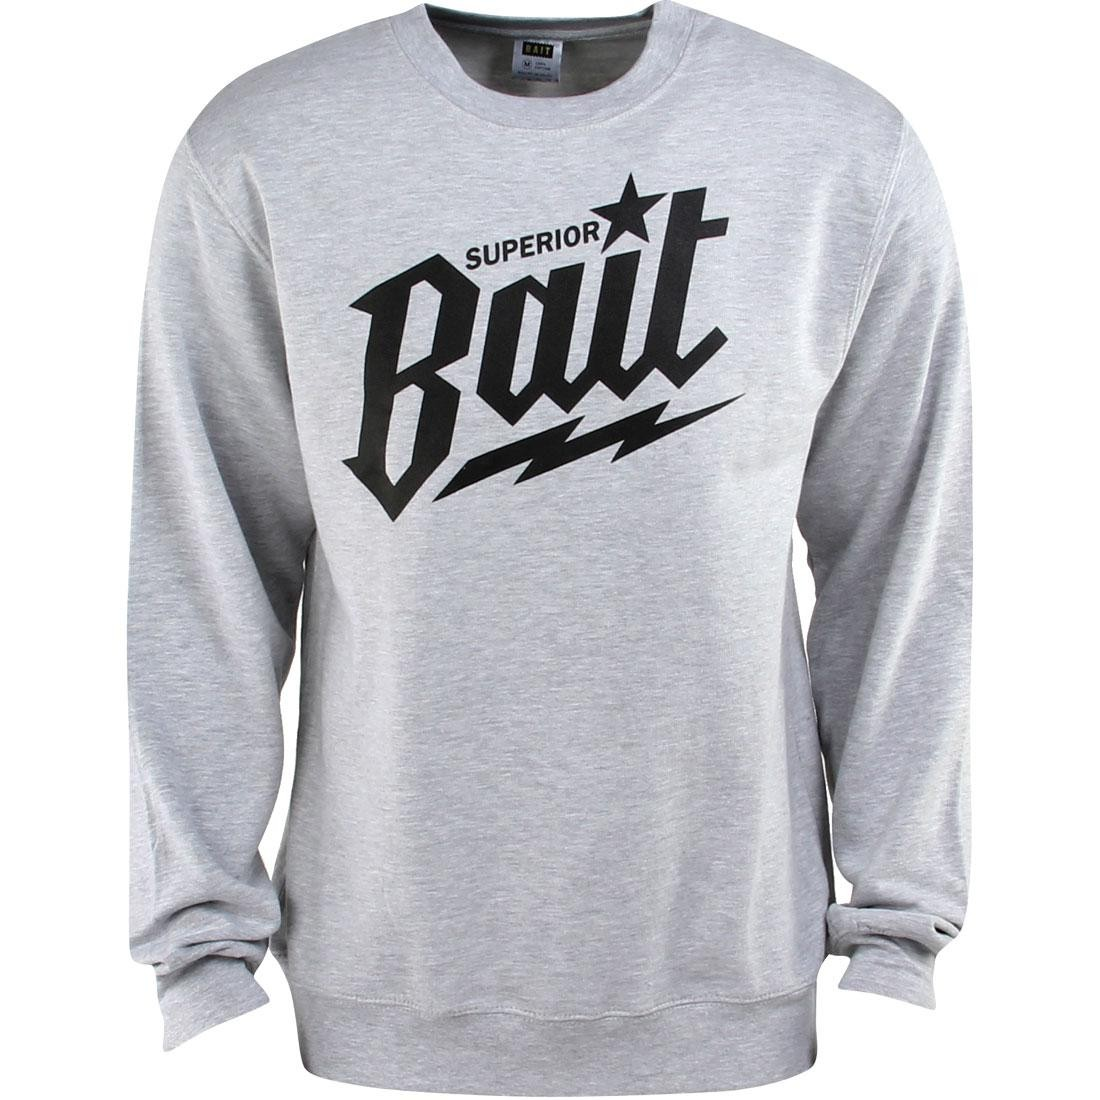 BAIT Superior BAIT Crewneck (gray / heather gray / black)